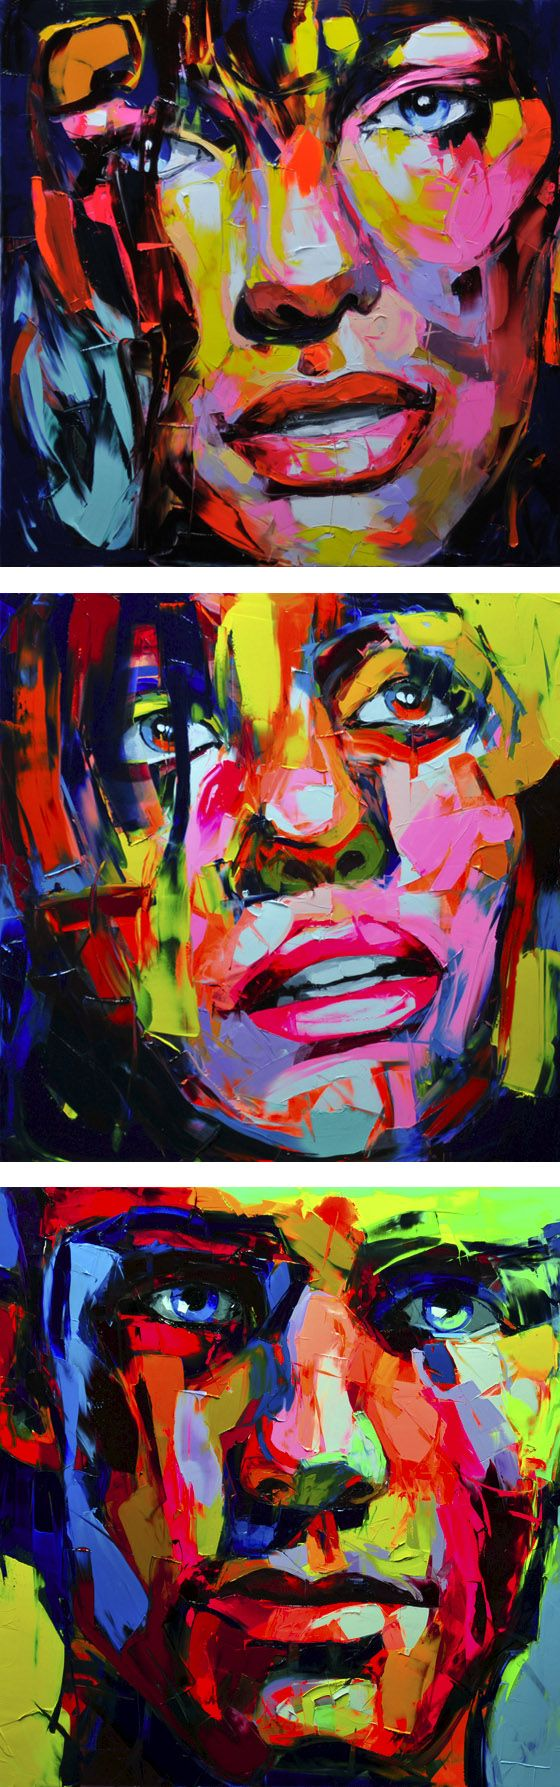 Paintings by Francoise Nielly. Interpret in makeup?